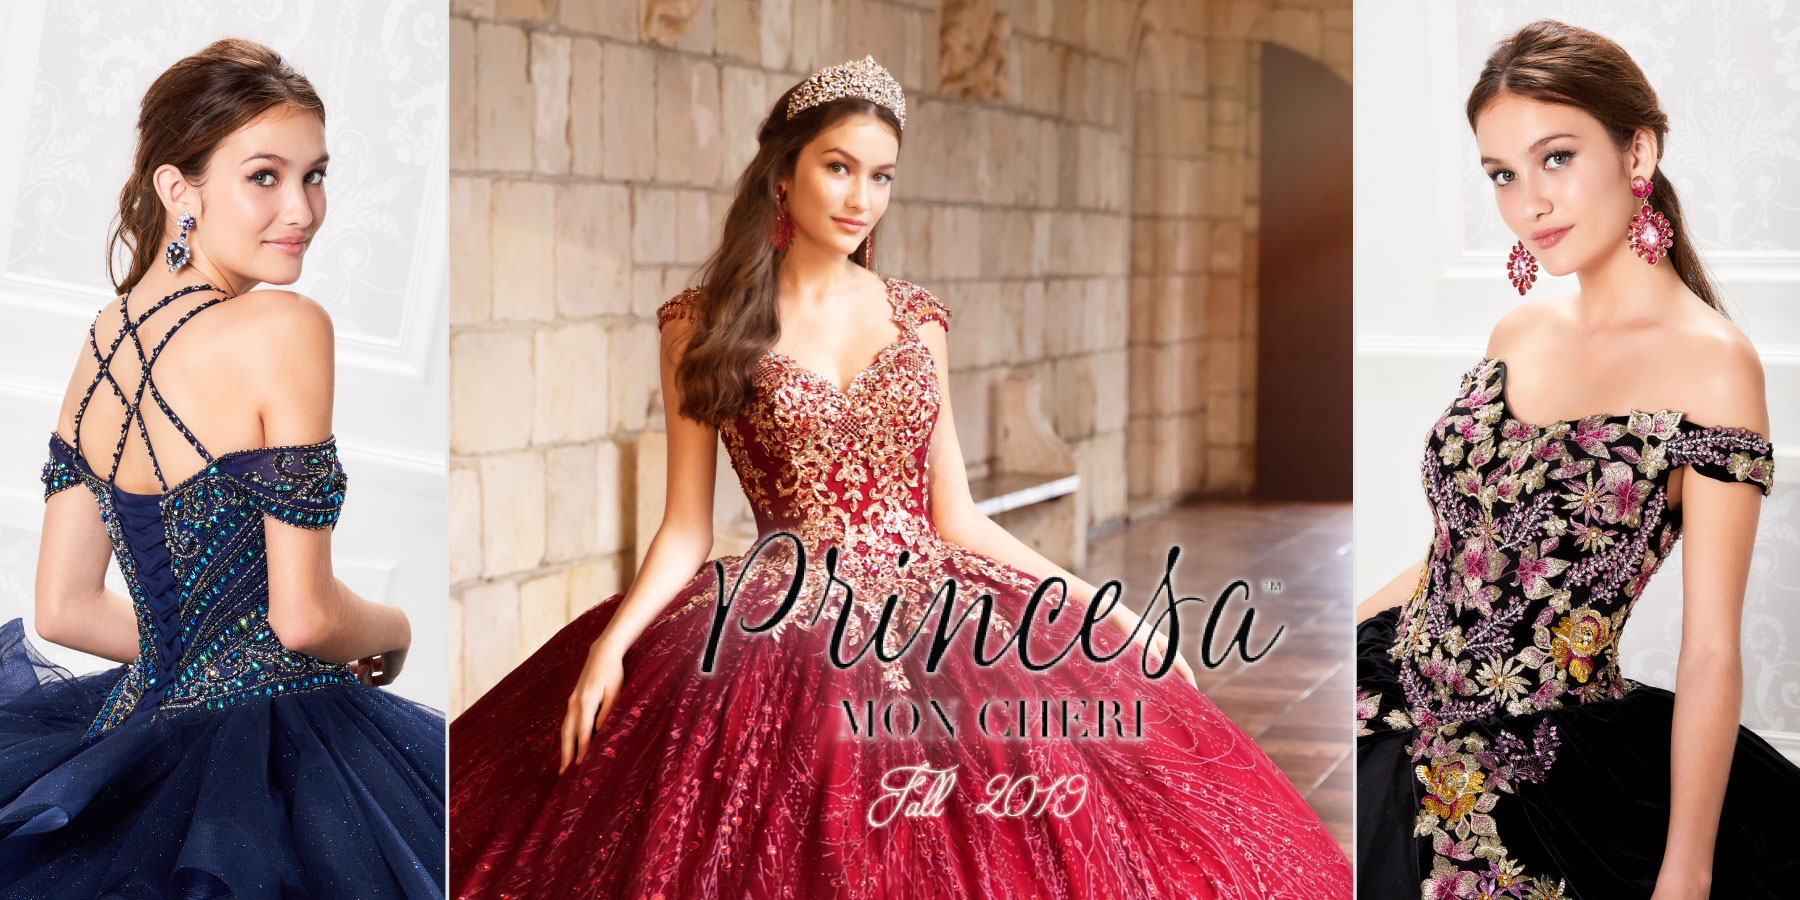 Princesa by Ariana Vara